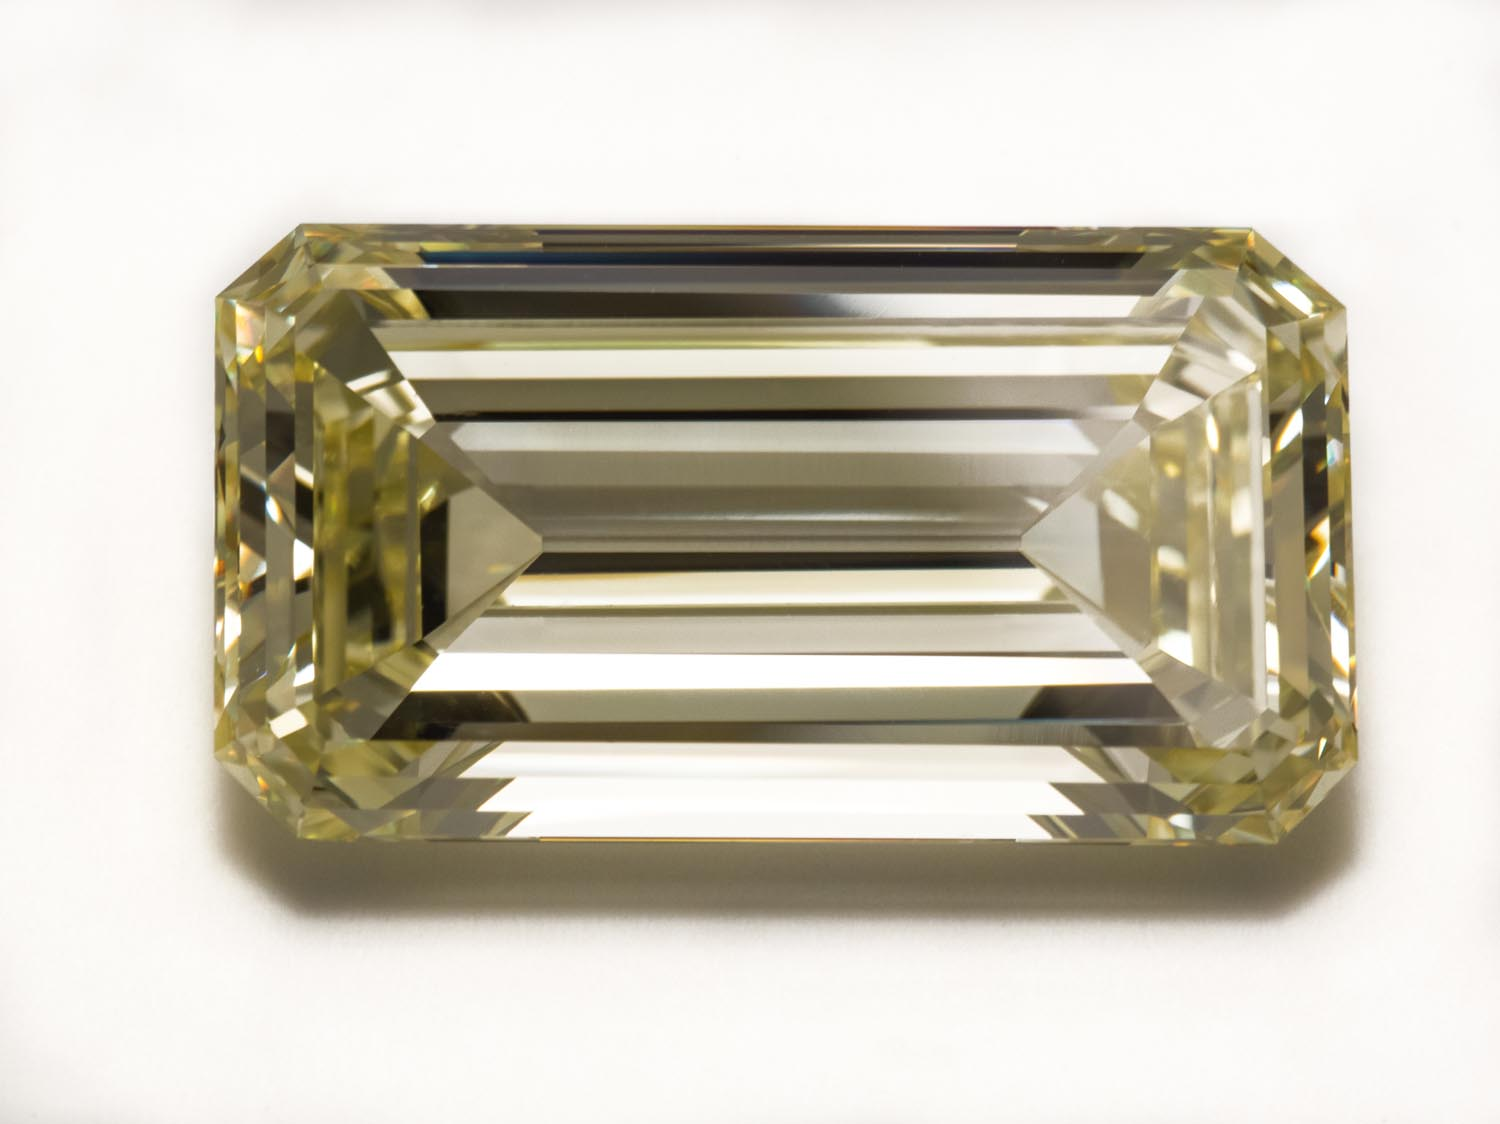 The American Museum of Natural History unveiled the Kimberley Diamond